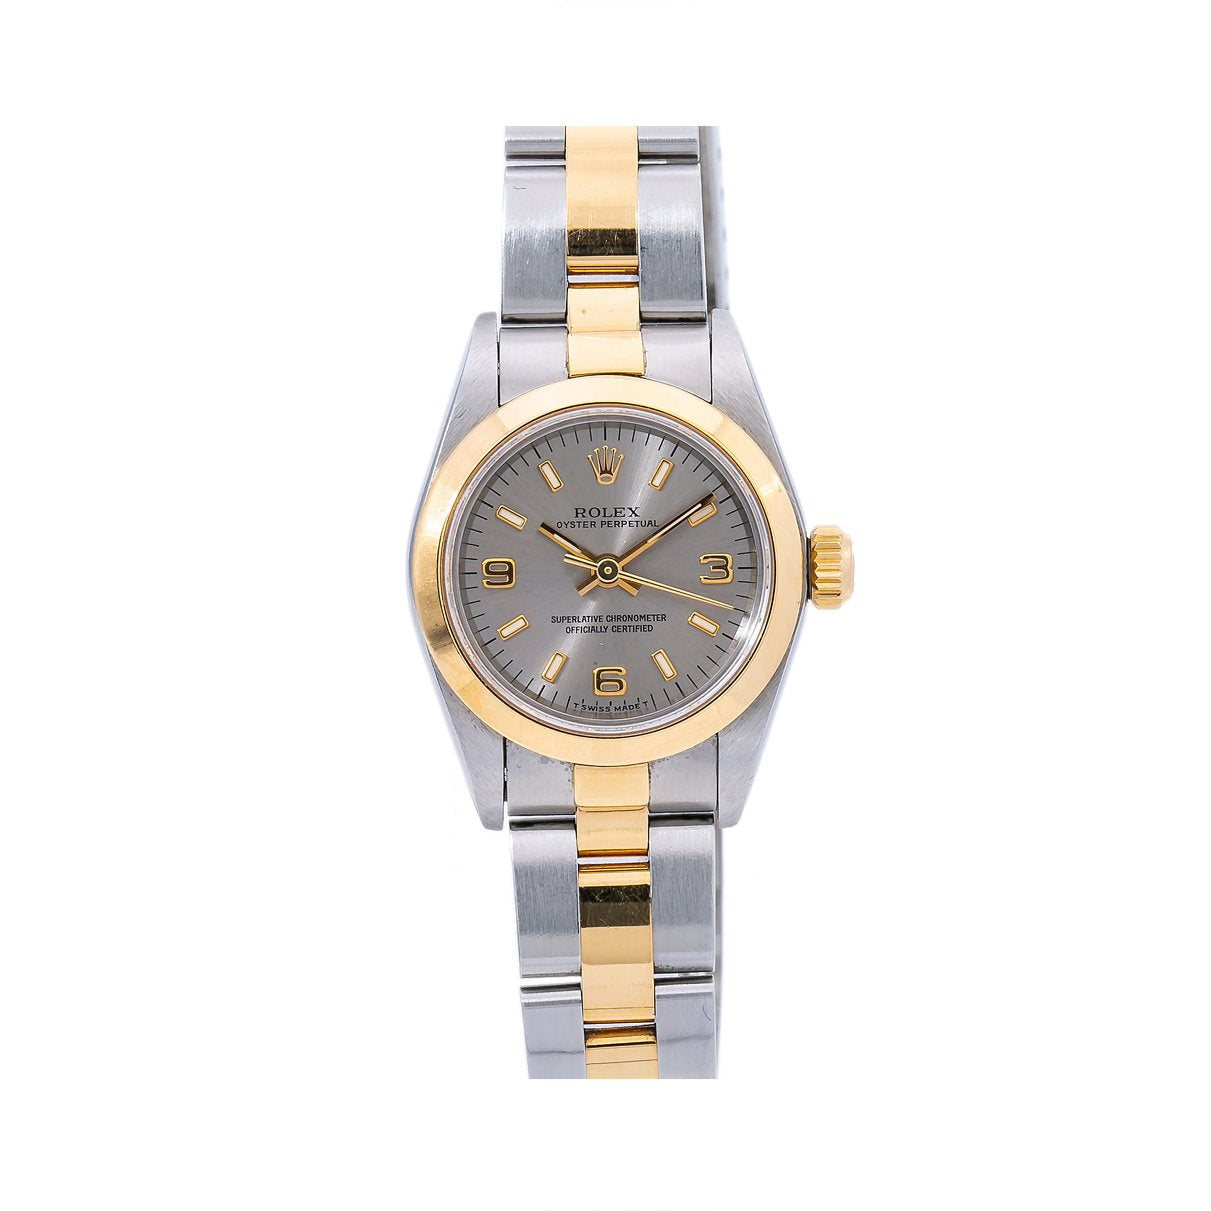 Rolex Oyster Perpetual NonDate 67183 24MM Silver Dial With Two Tone Oyster Bracelet